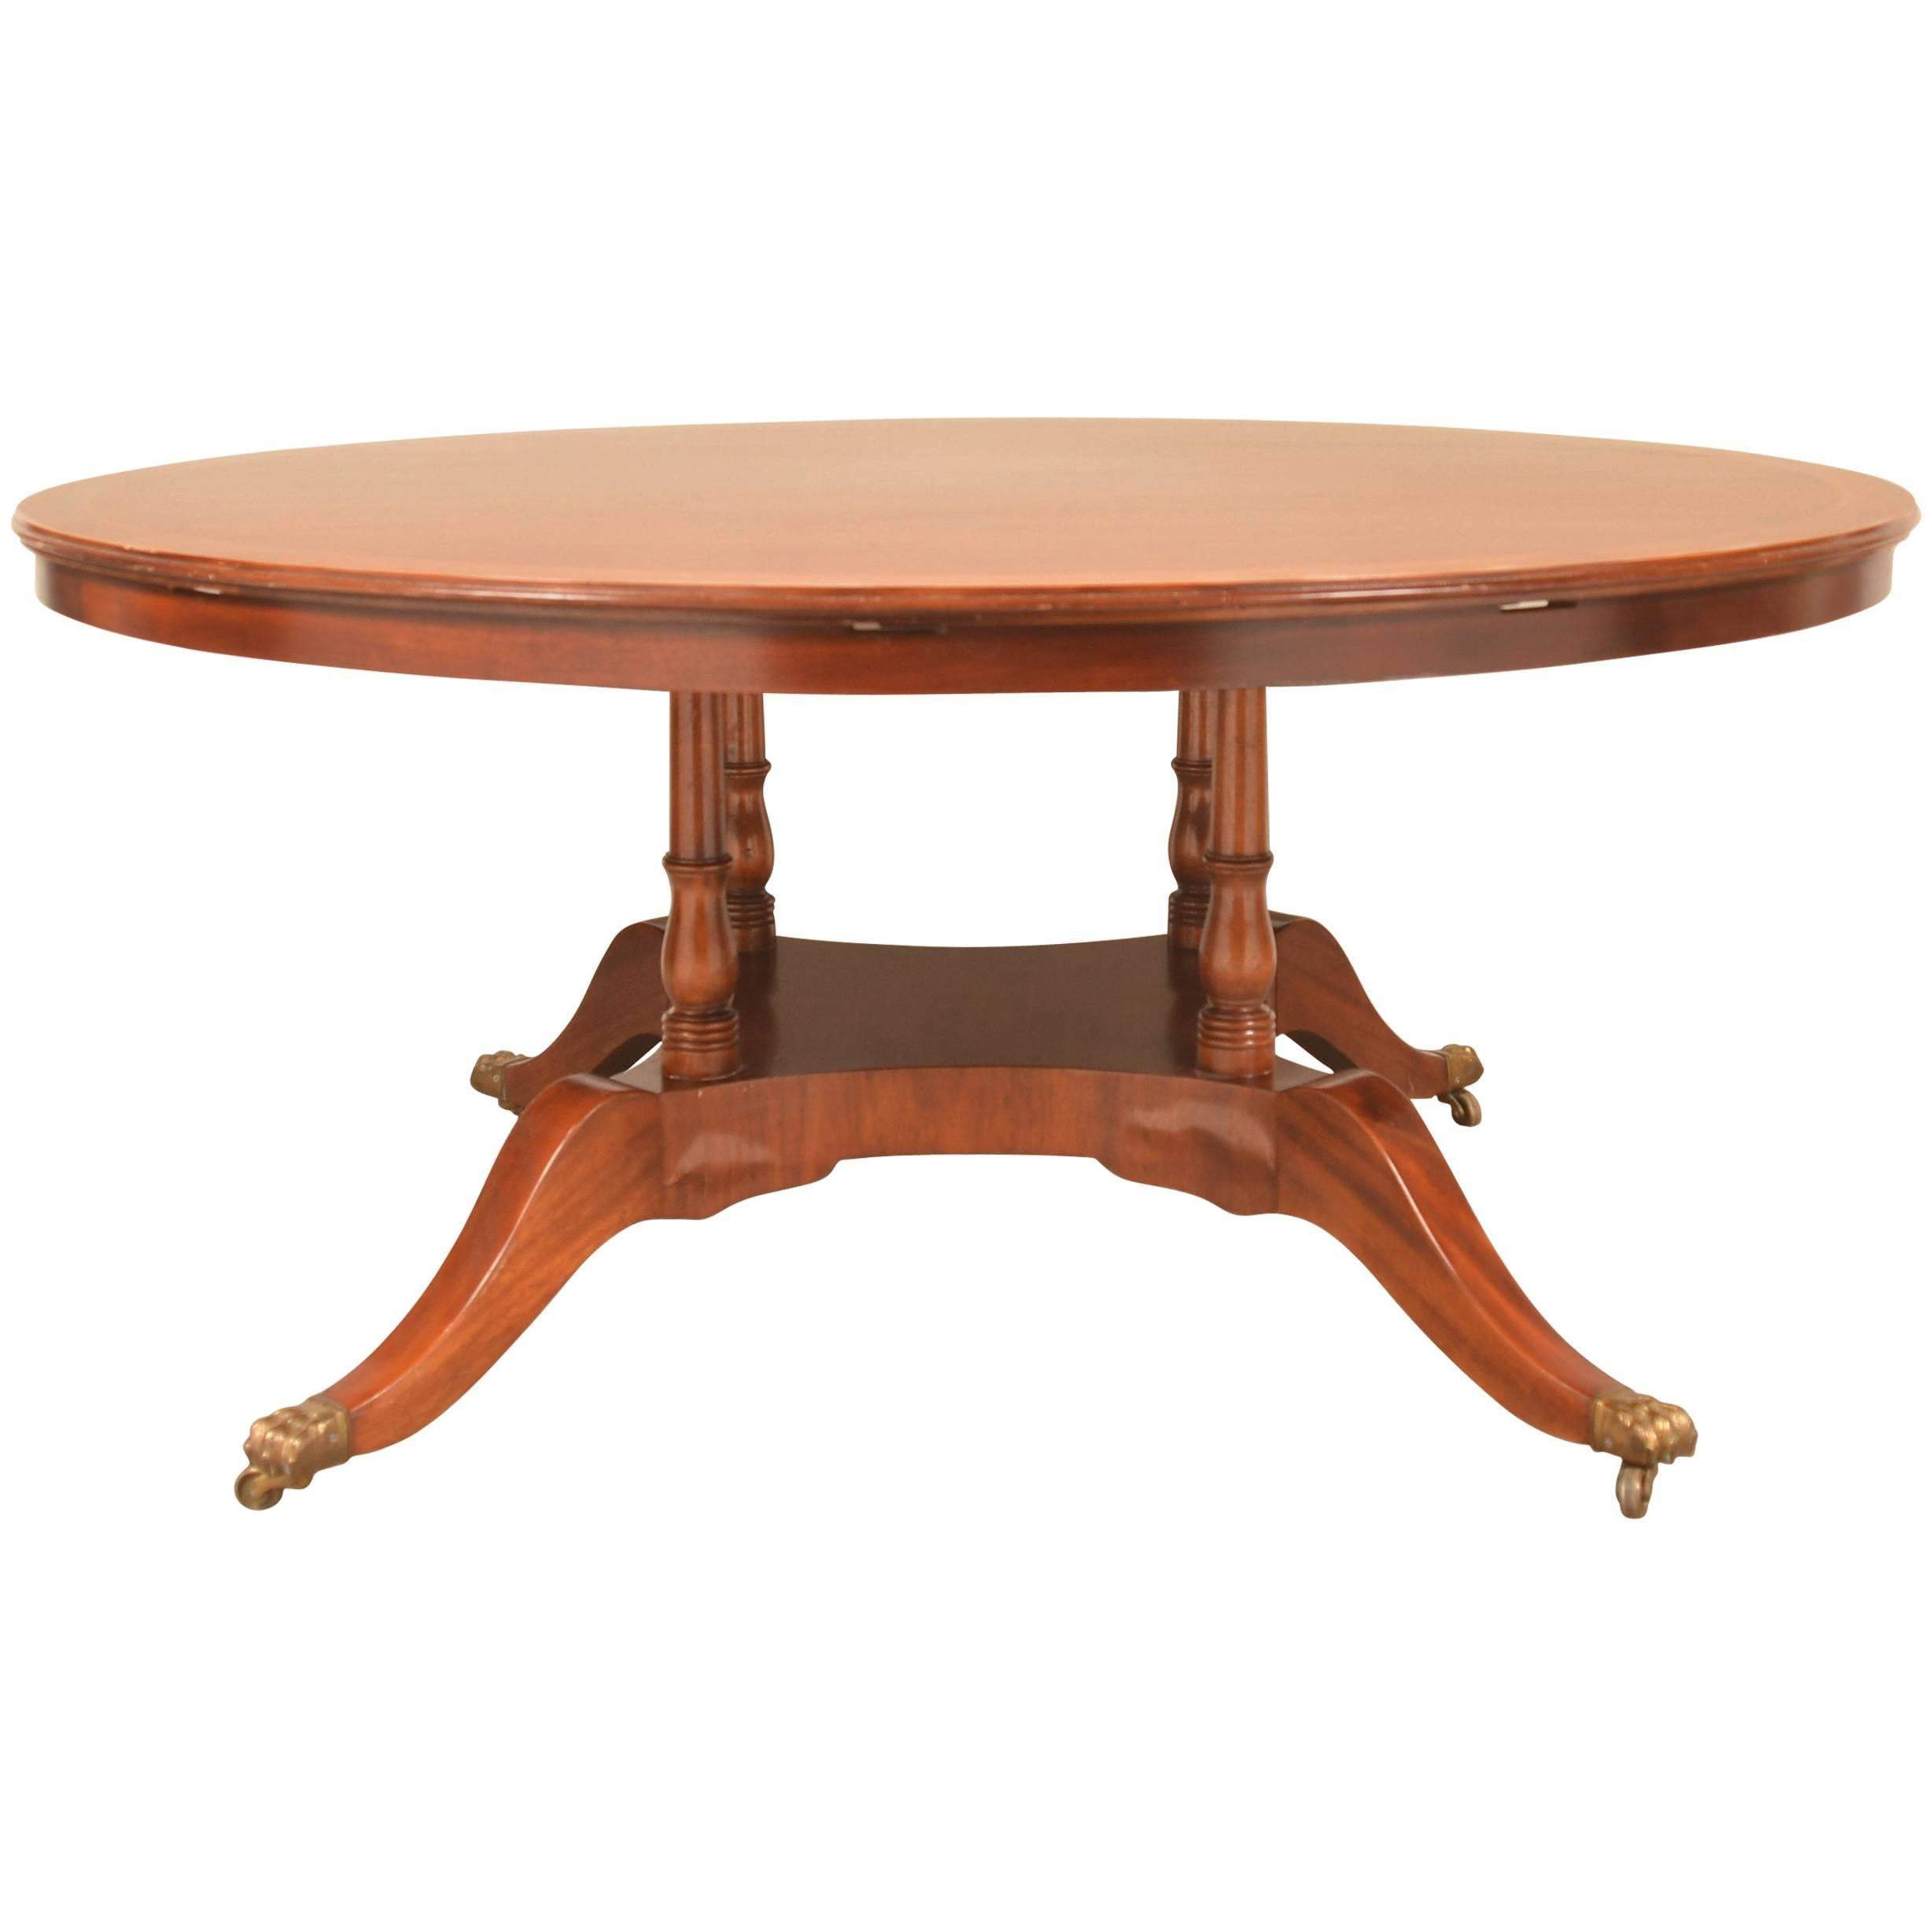 Regency Style Expanding Round Dining Table